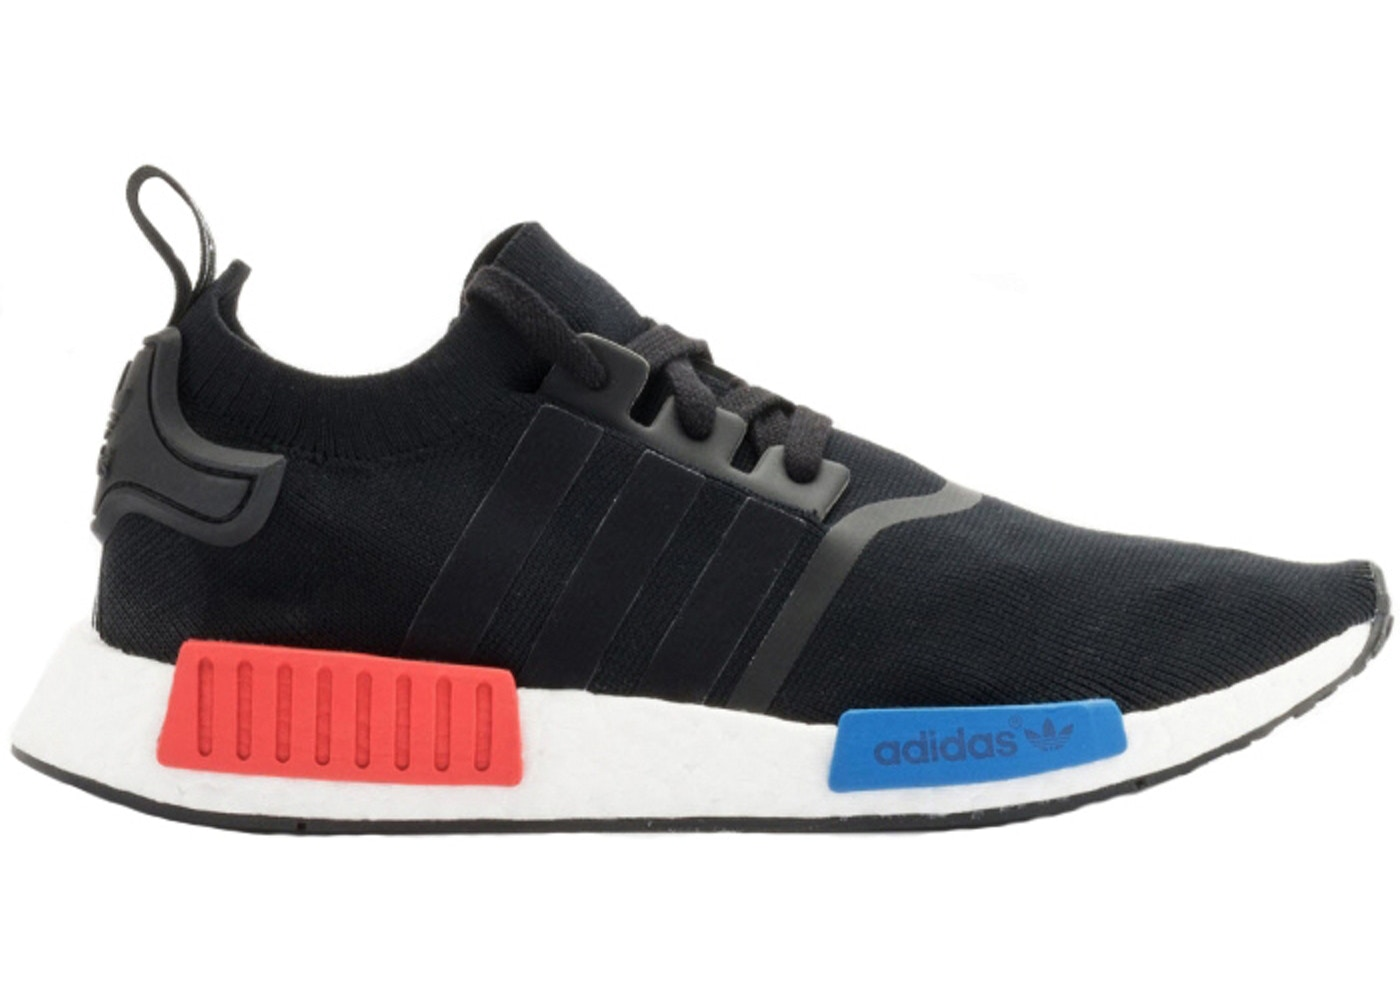 finest selection 08287 80200 adidas NMD R1 Core Black Lush Red (20152017) - S79168